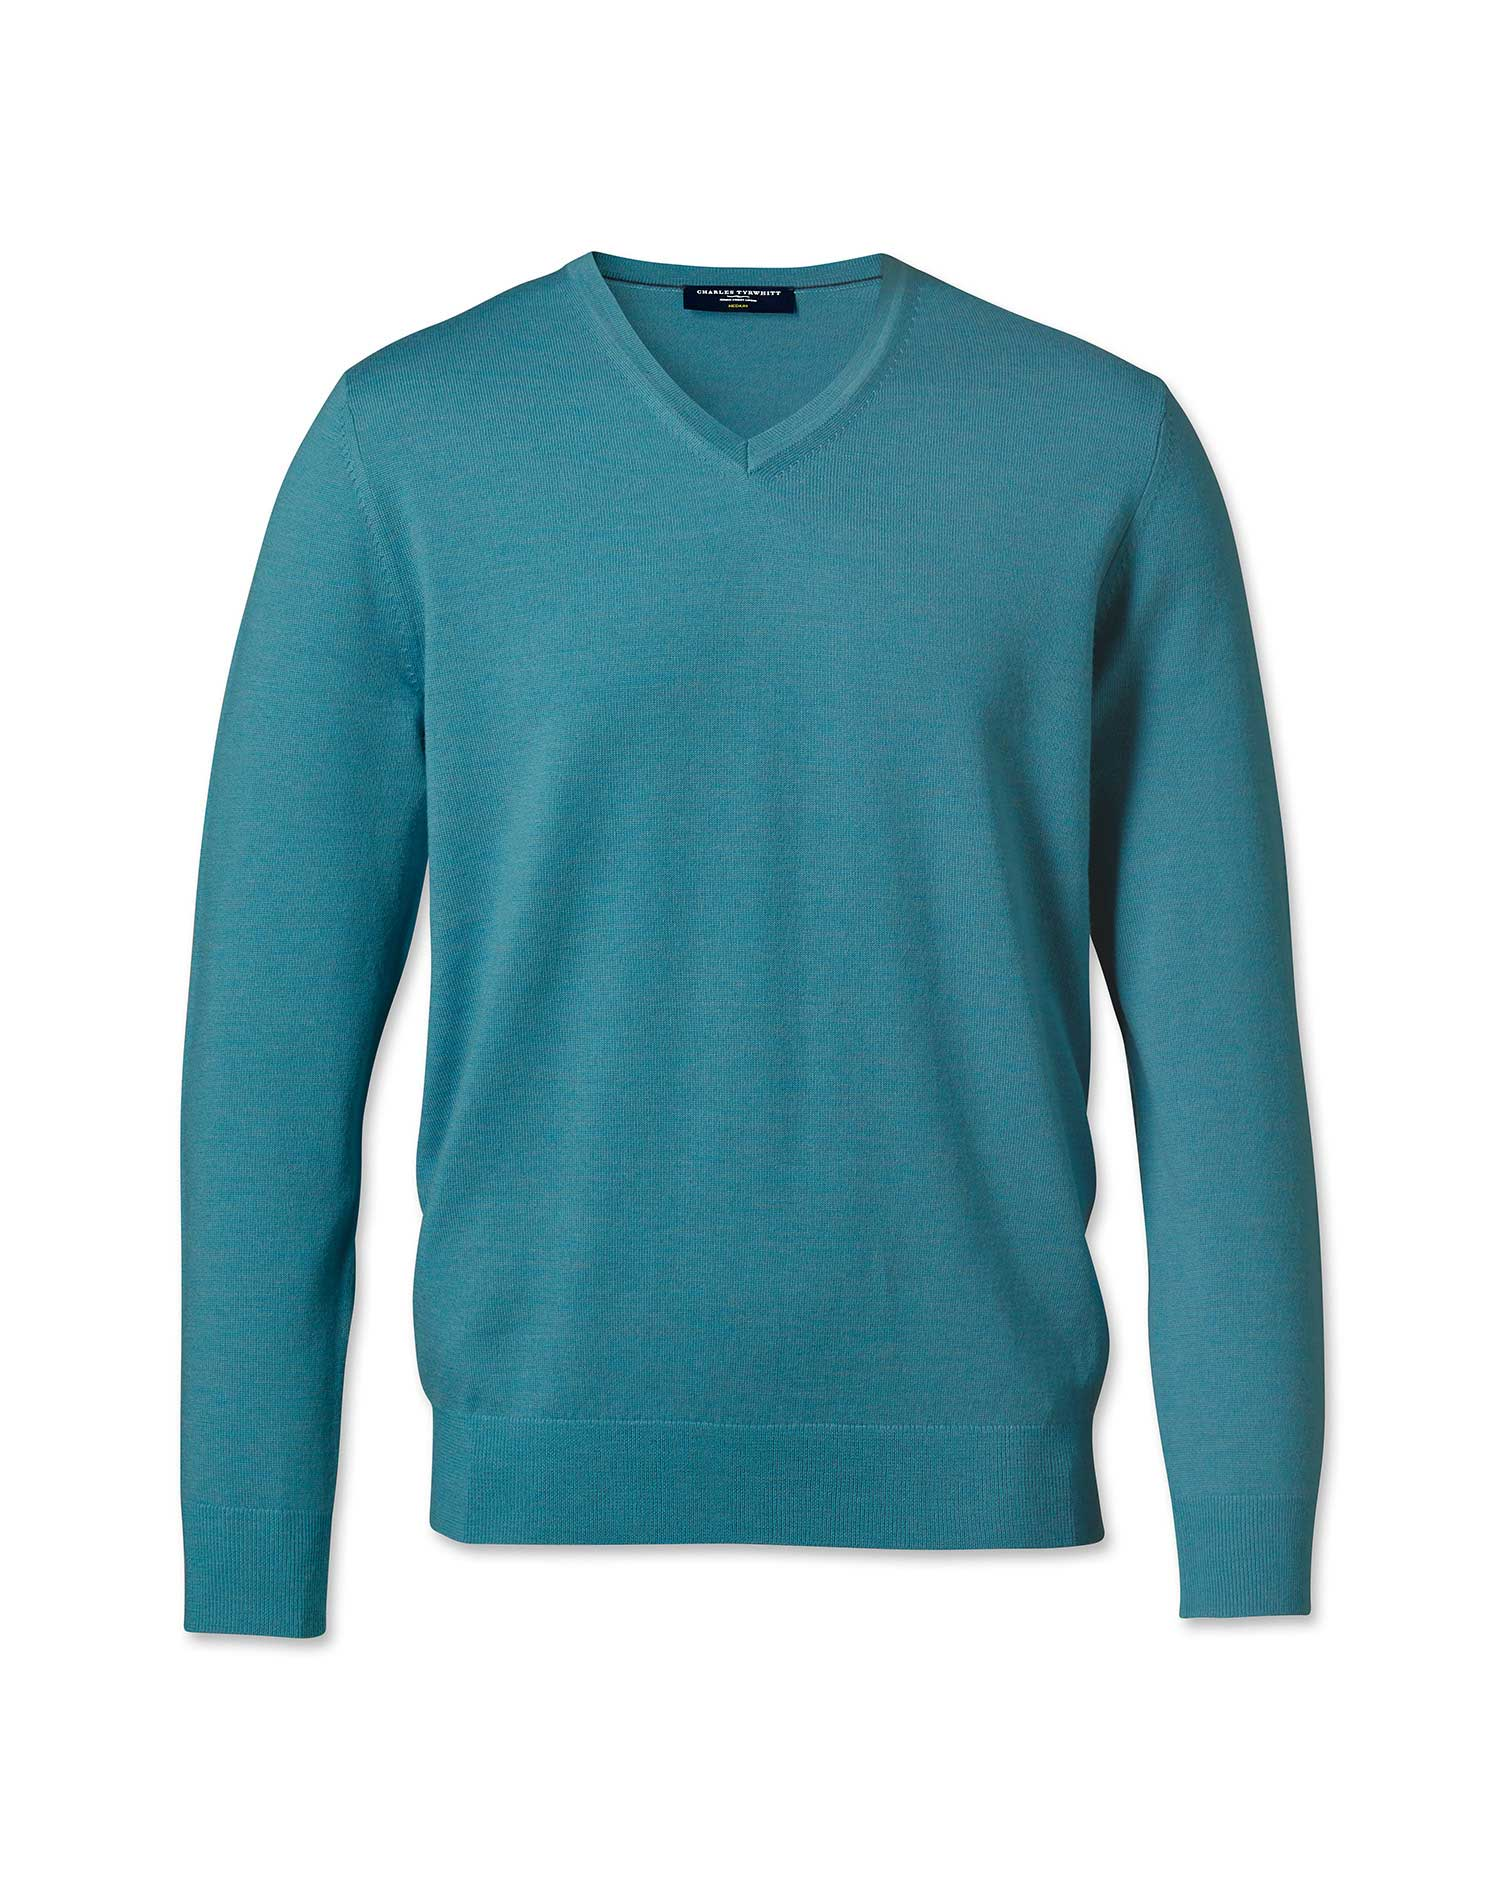 Teal Merino Wool V-Neck Jumper Size XL by Charles Tyrwhitt